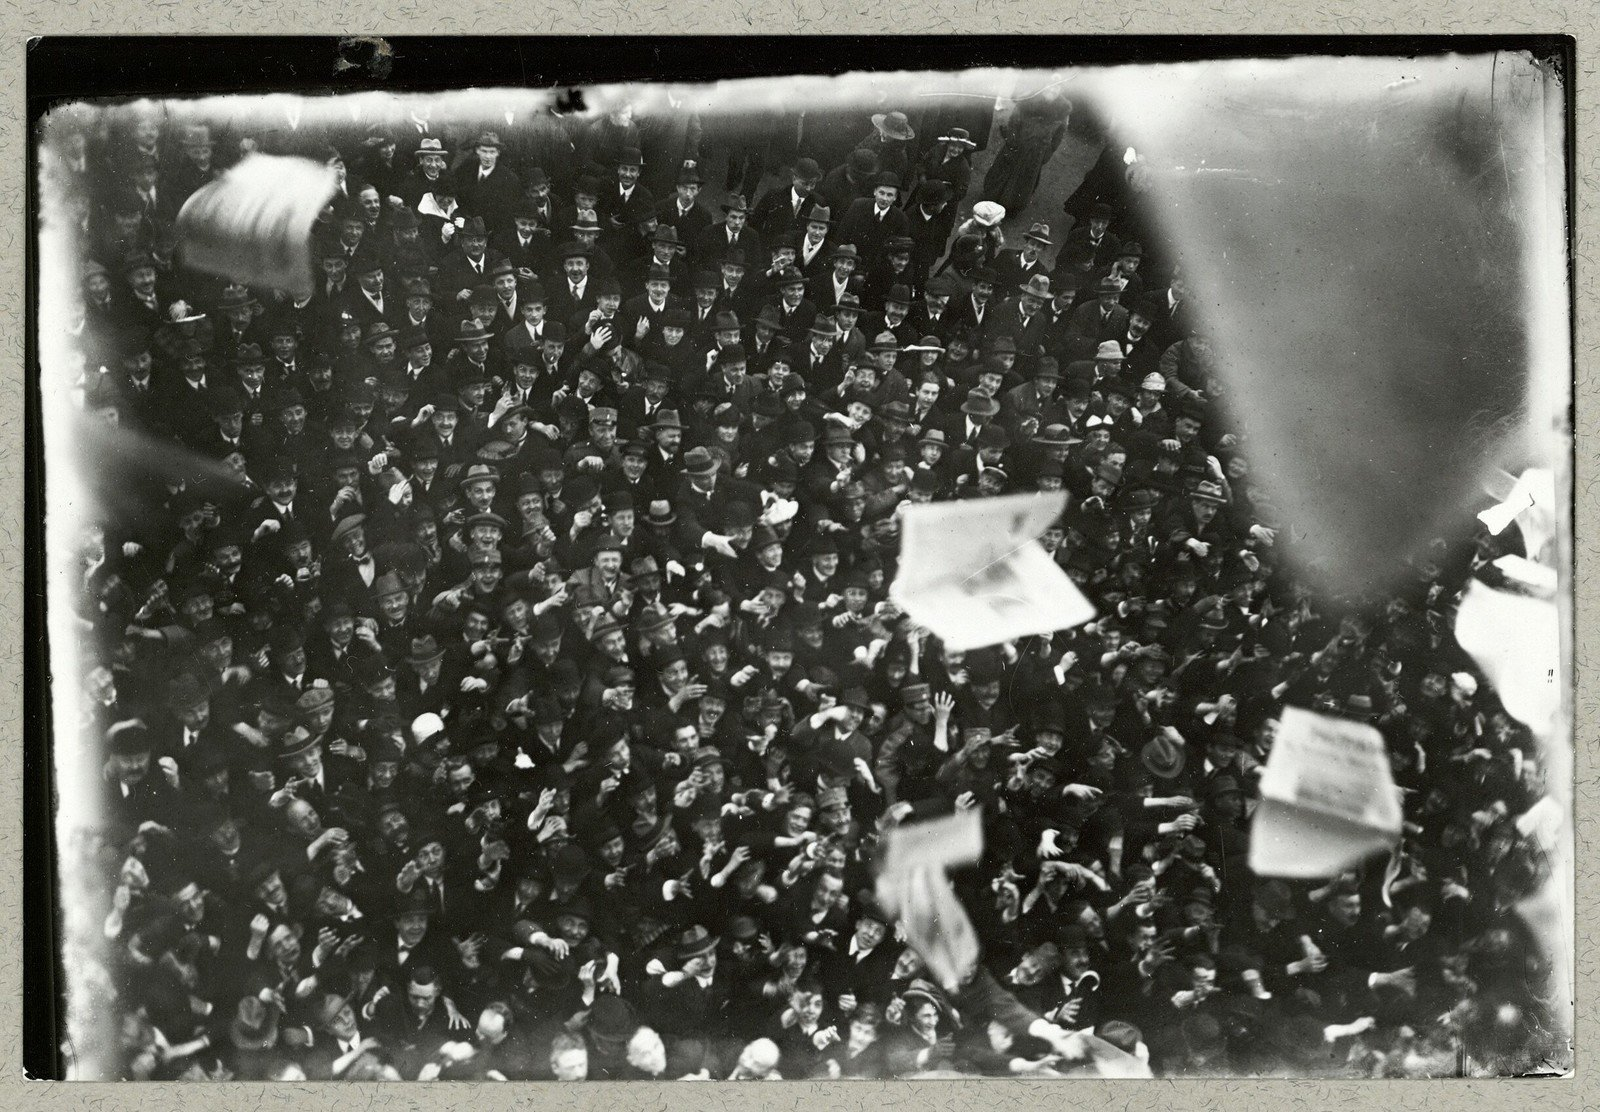 Demonstration during the Easter Crisis in Denmark, 1920, Holger Damgaard, National Library of Denmark, CC BY-NC-ND